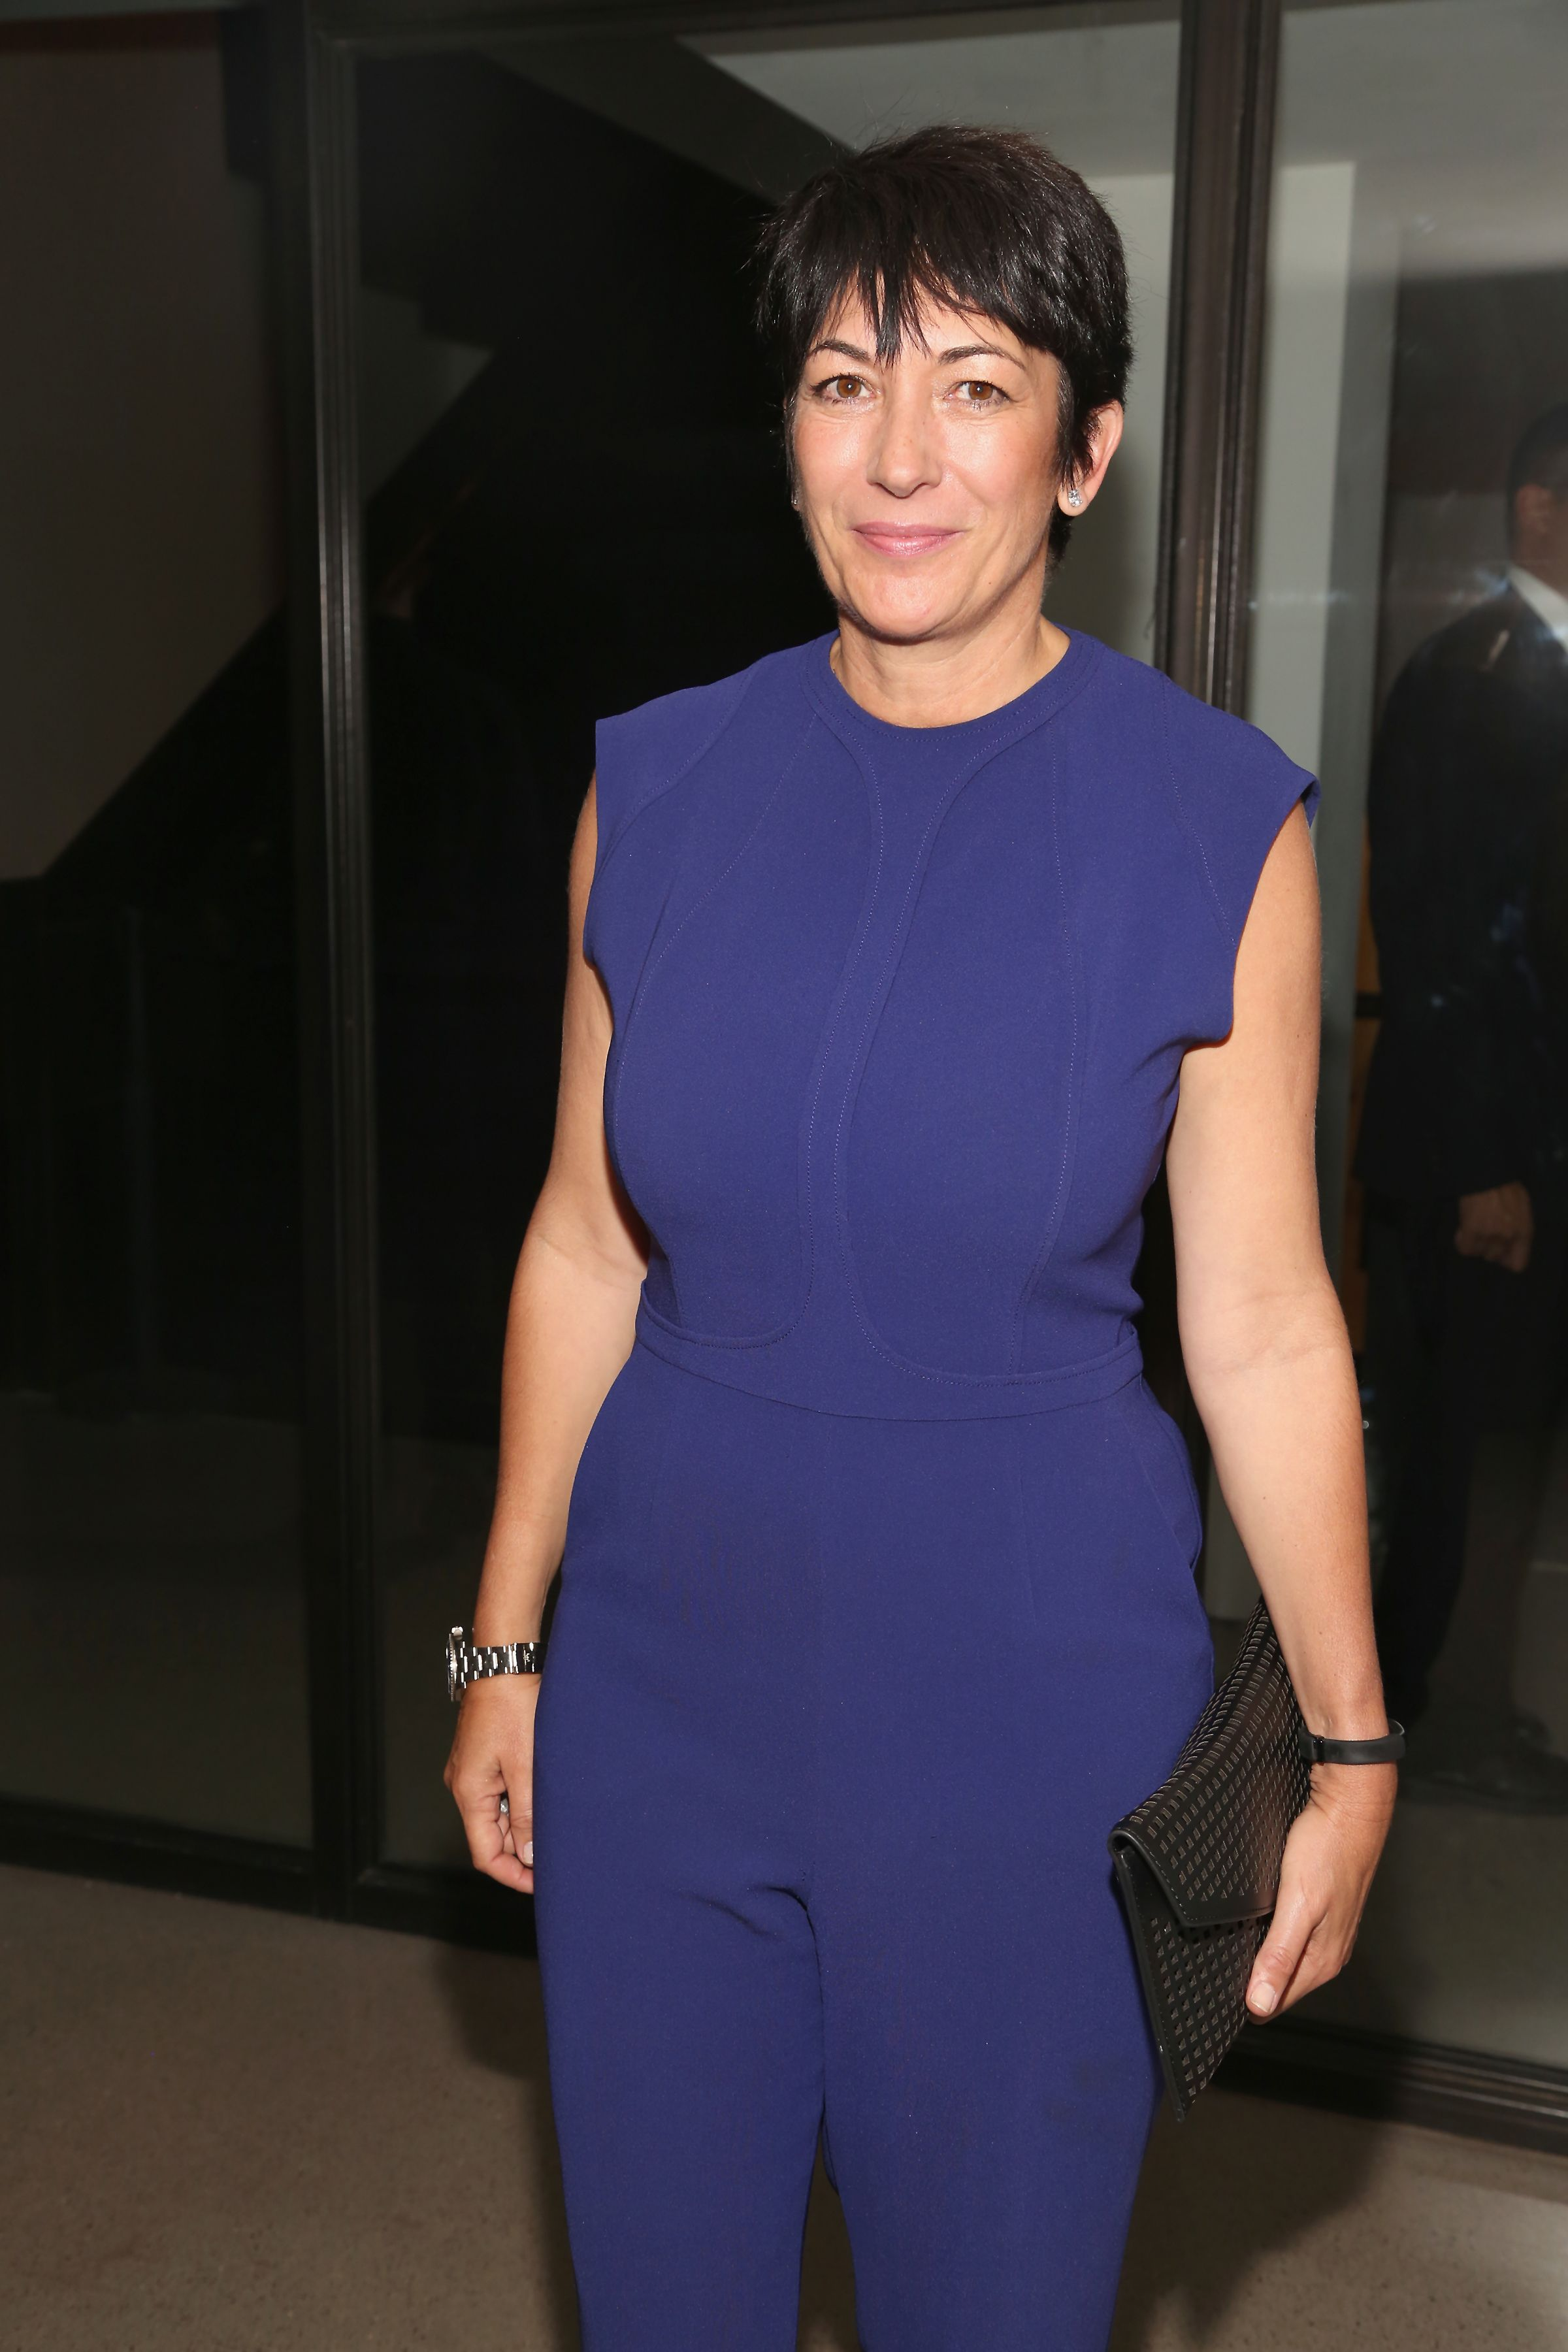 Ghislaine Maxwell Pleads Not Guilty In Jeffrey Epstein Sex Abuse Case